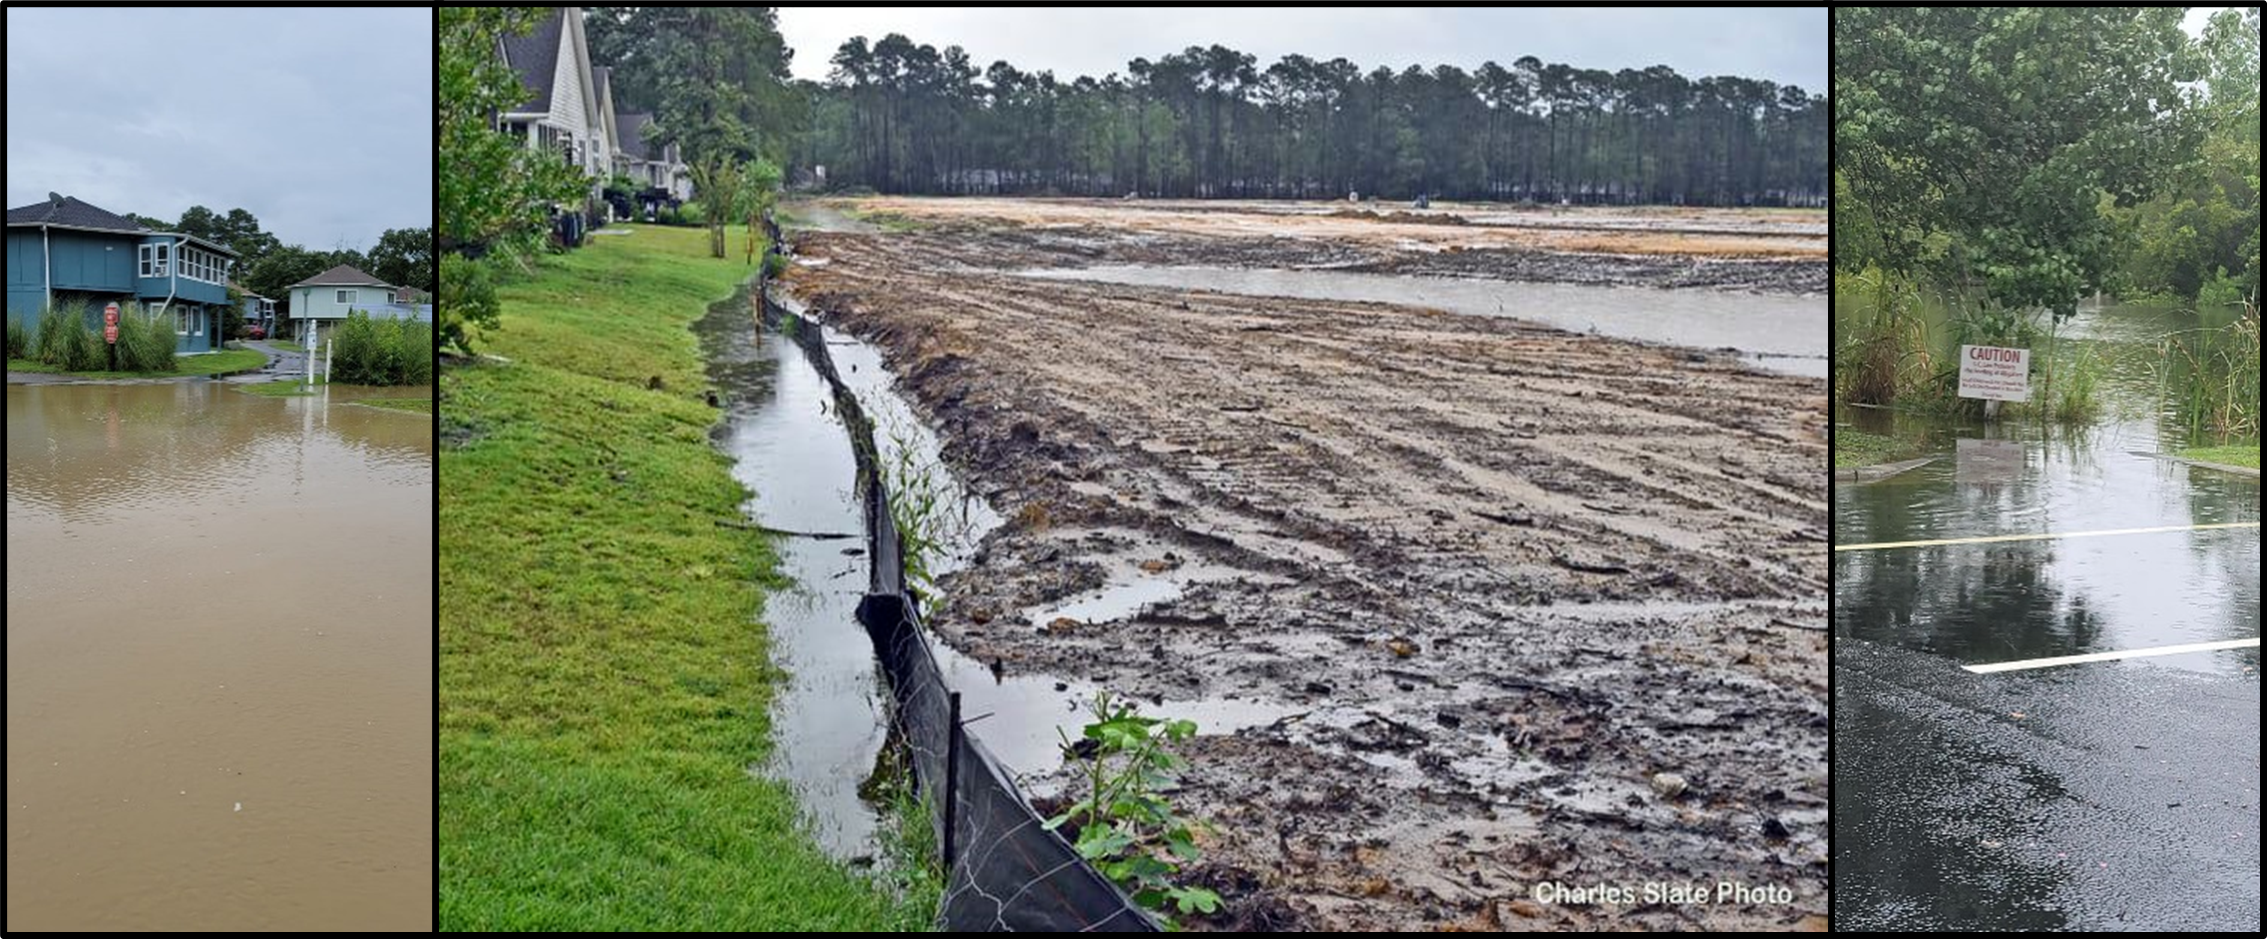 Featured image for the Assessing the impacts of a housing development on community flooding project.